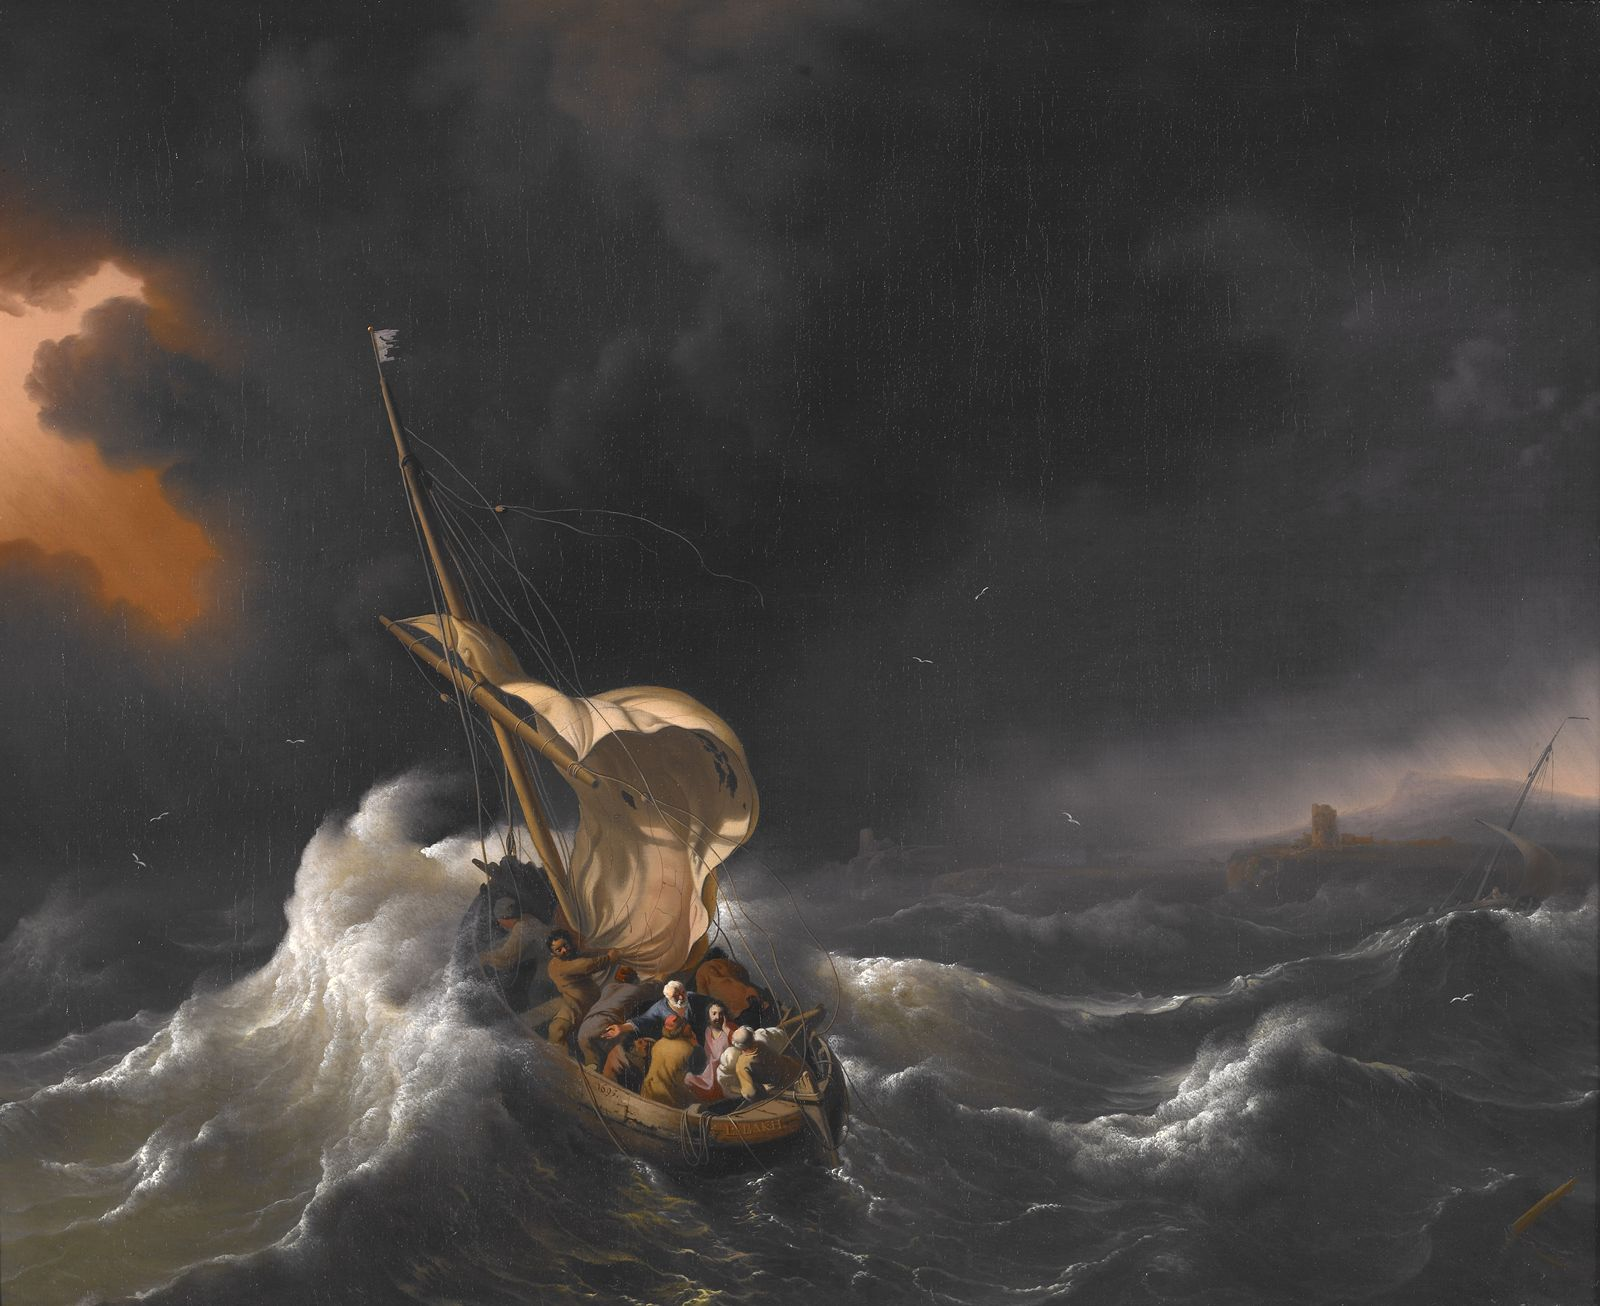 Christ in the Storm on the Sea of Galilee by Ludolf Bakhuizen - via Wikimedia Commons